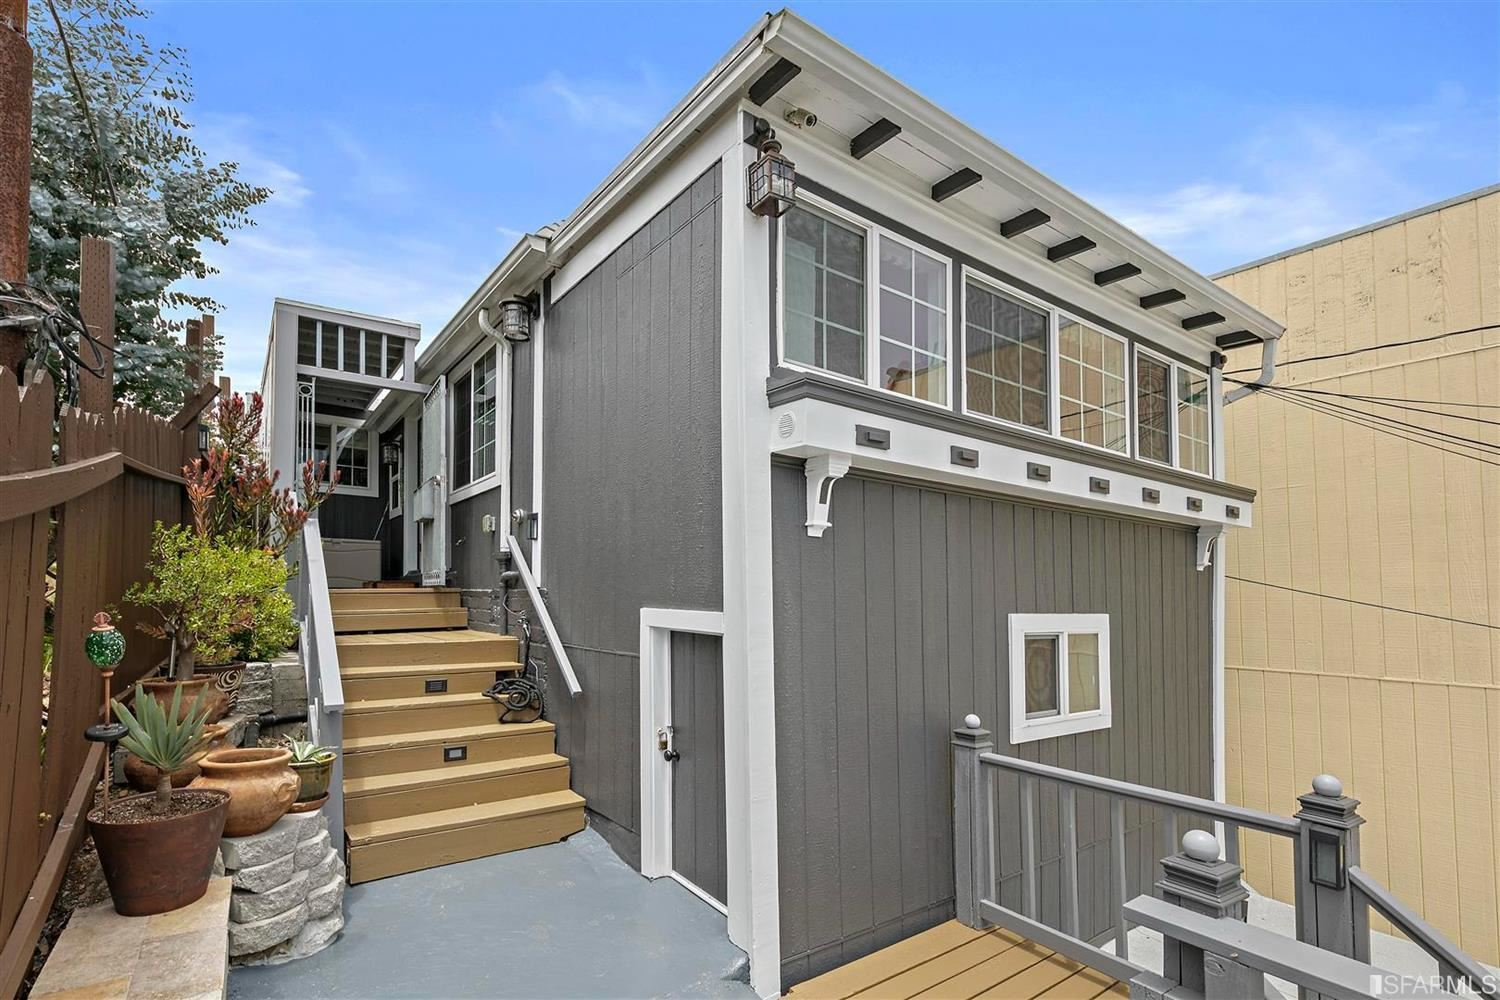 32 Josiah Avenue, San Francisco, CA 94112 - #: 500416